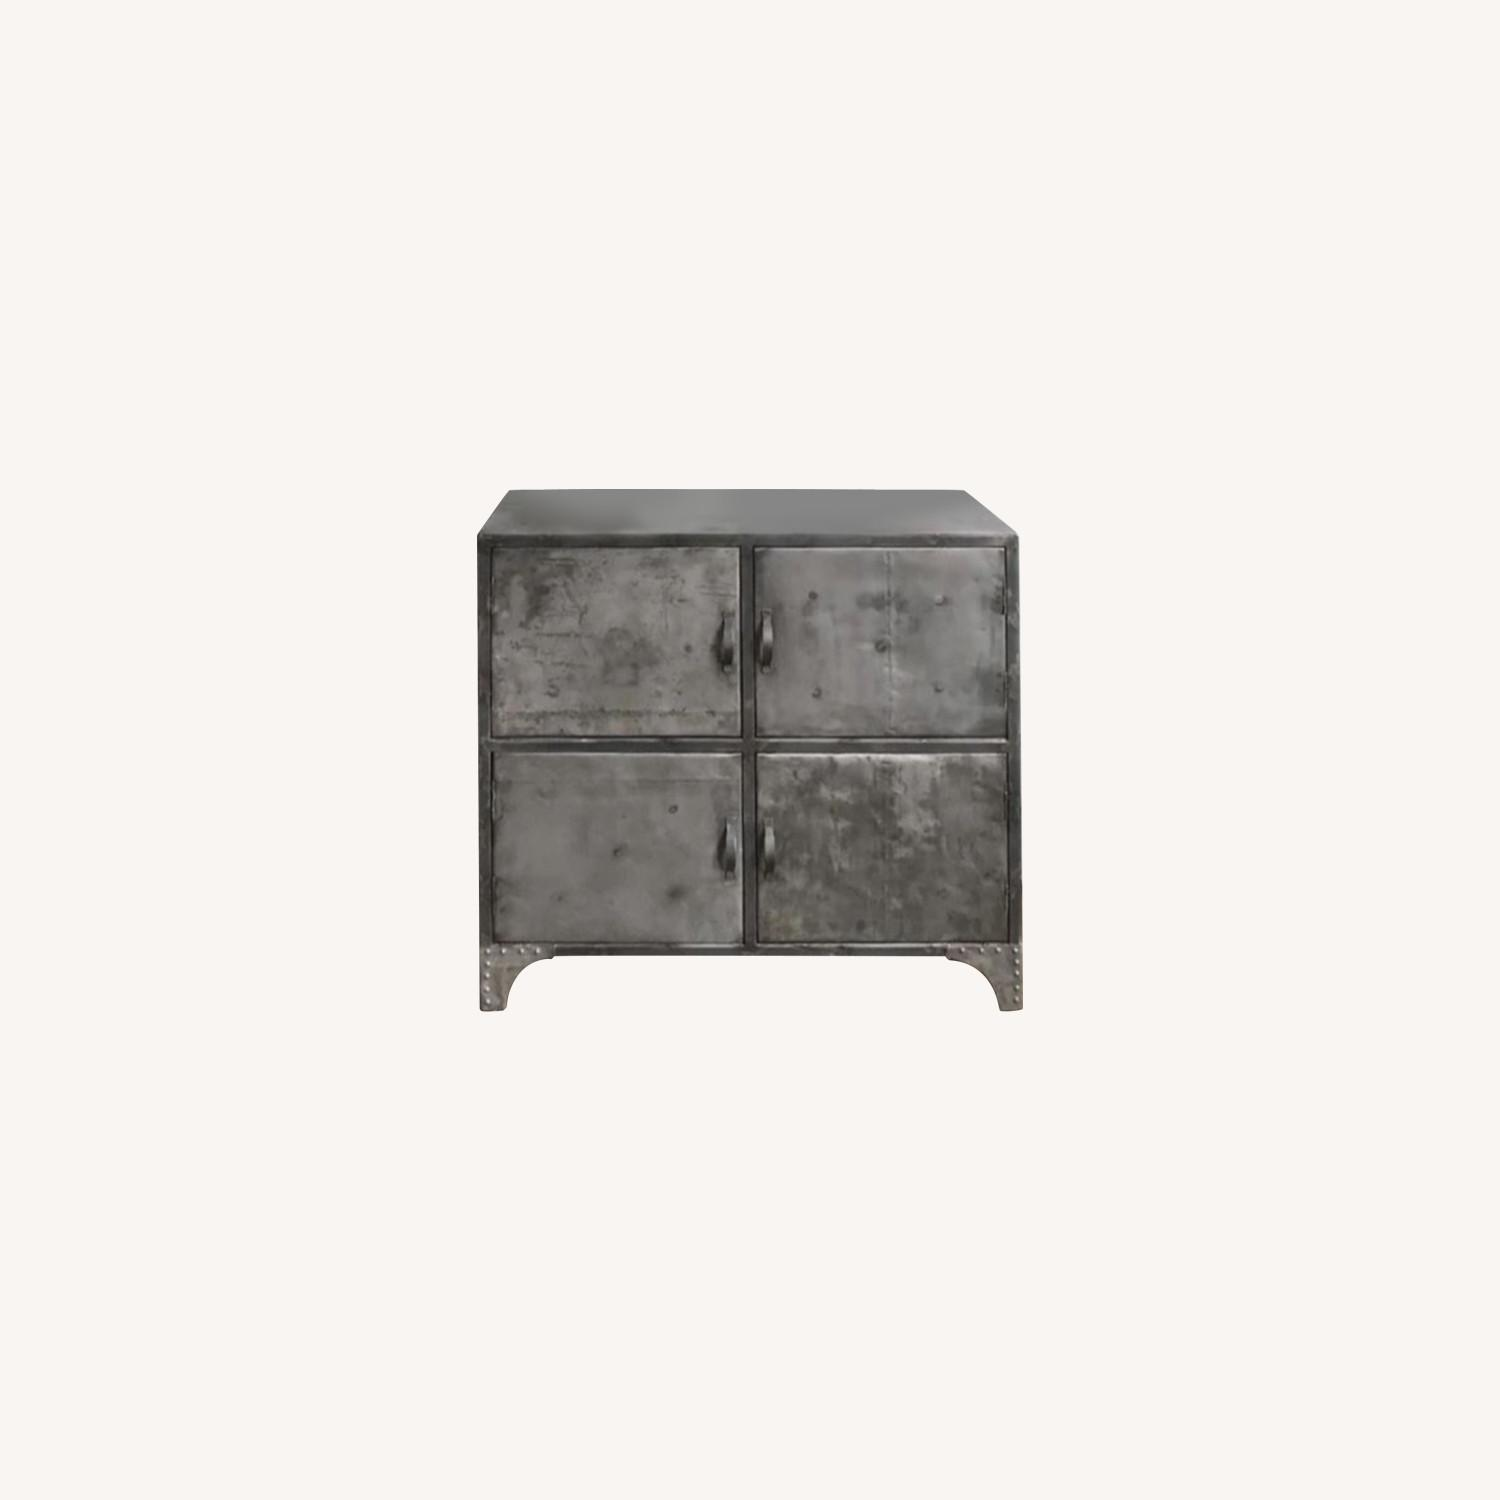 From The Source Recycled Oil Drum 4-Door Designer Cabinet - image-0